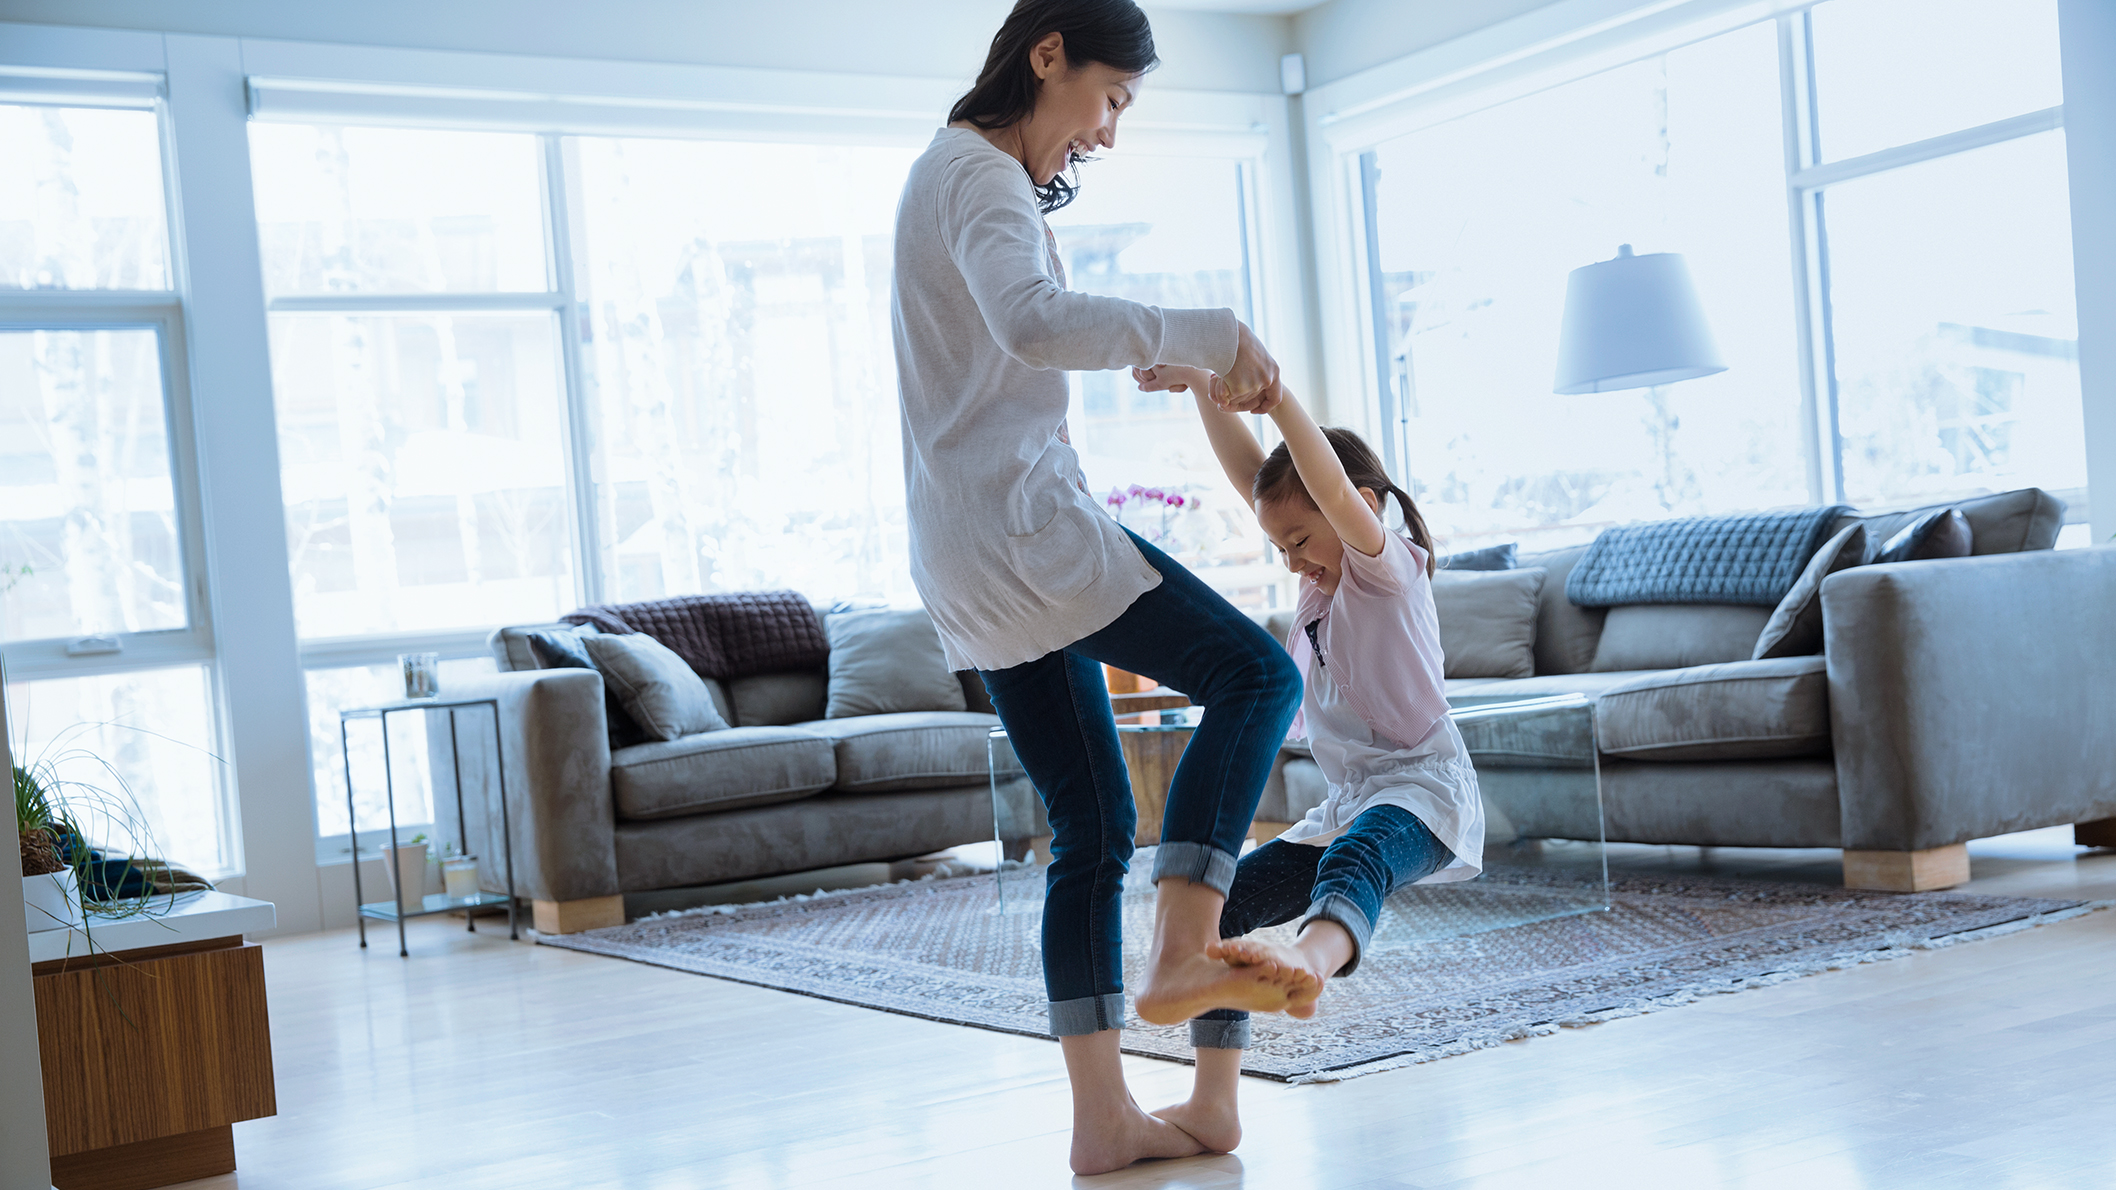 Mother dancing with daughter in living room